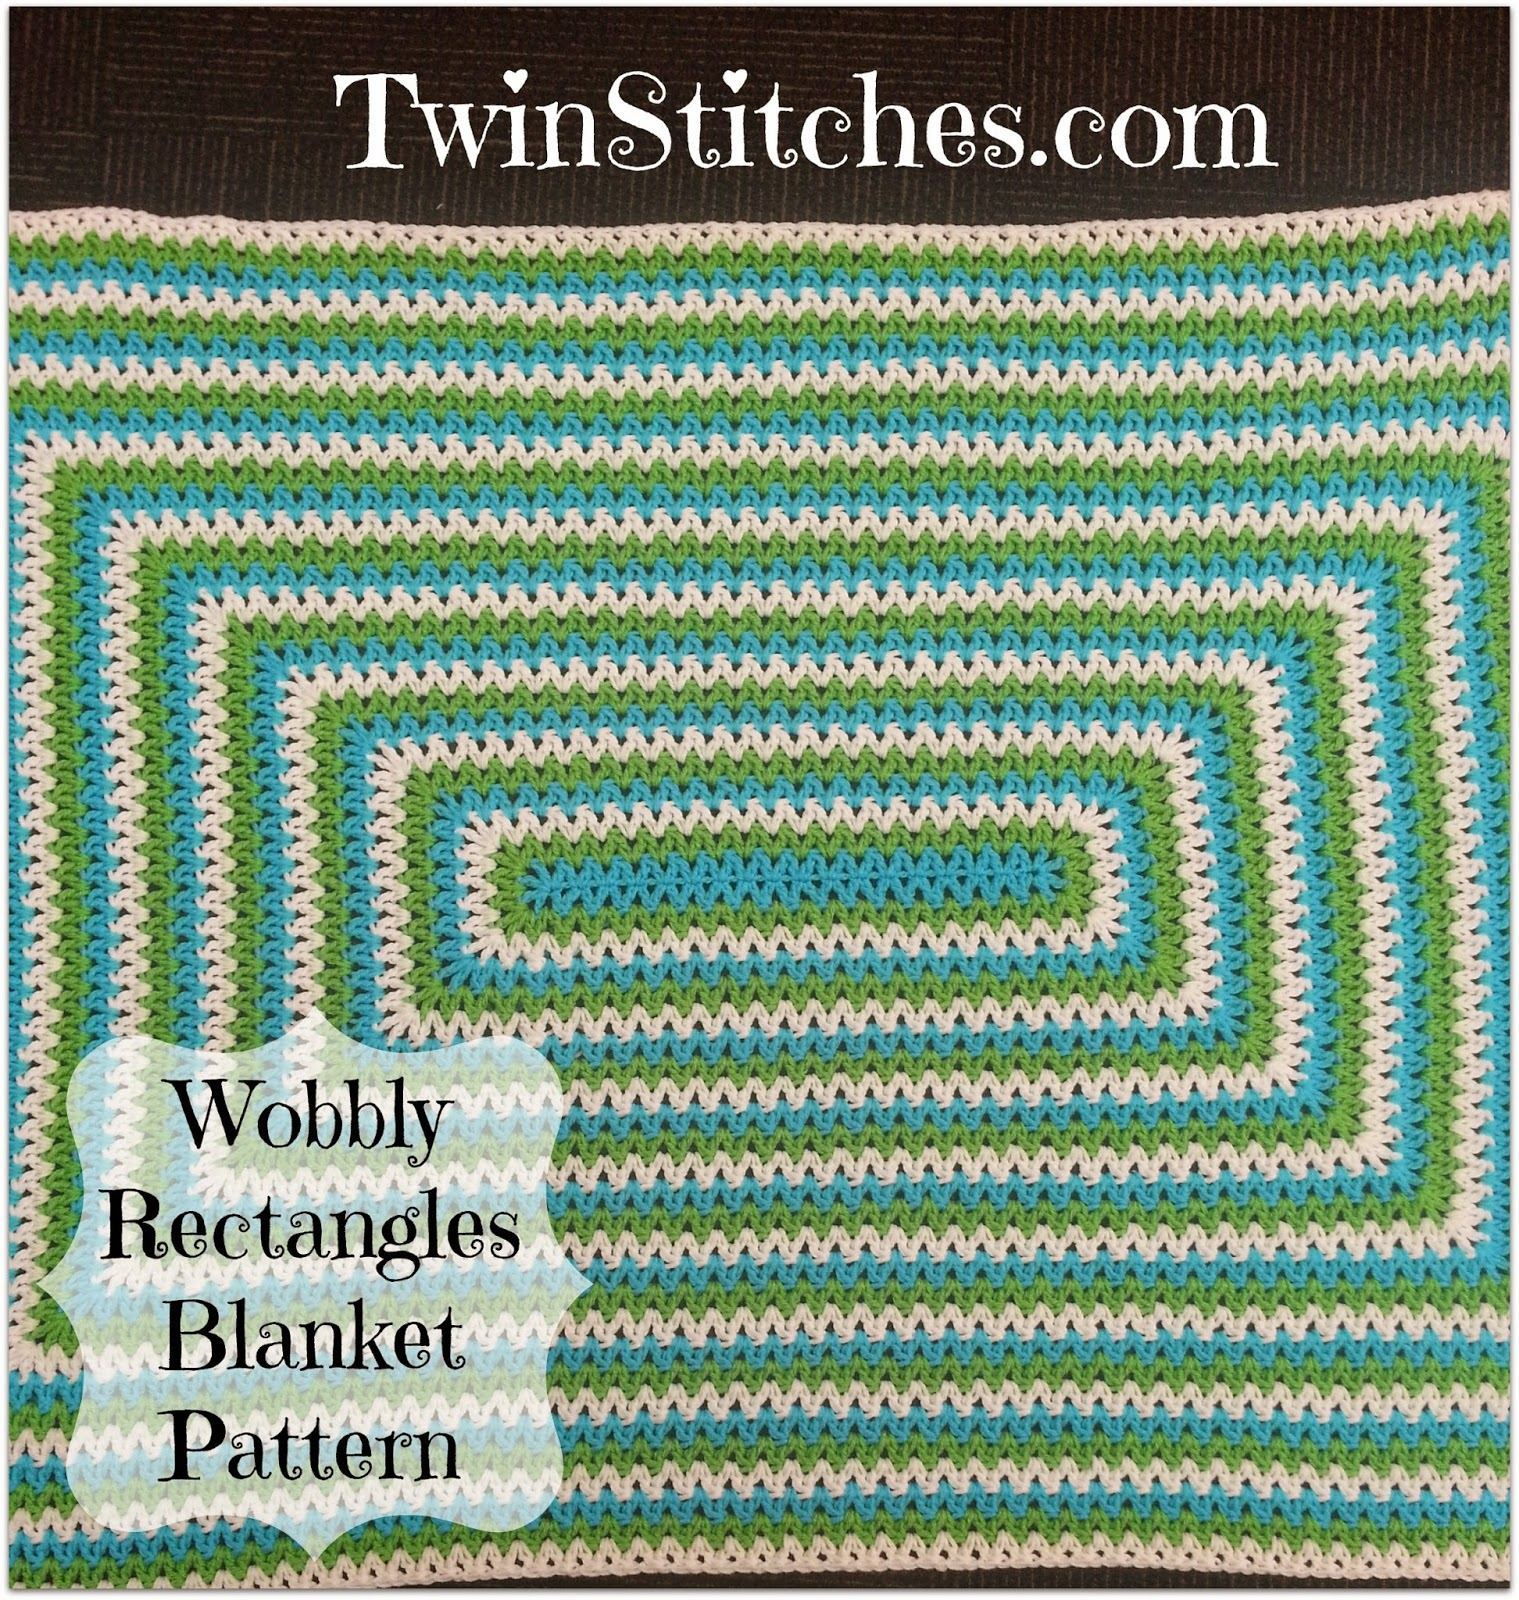 Tw In Stitches Wobbly Rectangles Blanket Free Pattern Heart Shape Crochet Diagram I Love A Square But Sometimes It Is Helpful To Have Your More The Of Rectangle Dc2tog Stitch Can Be Used Create